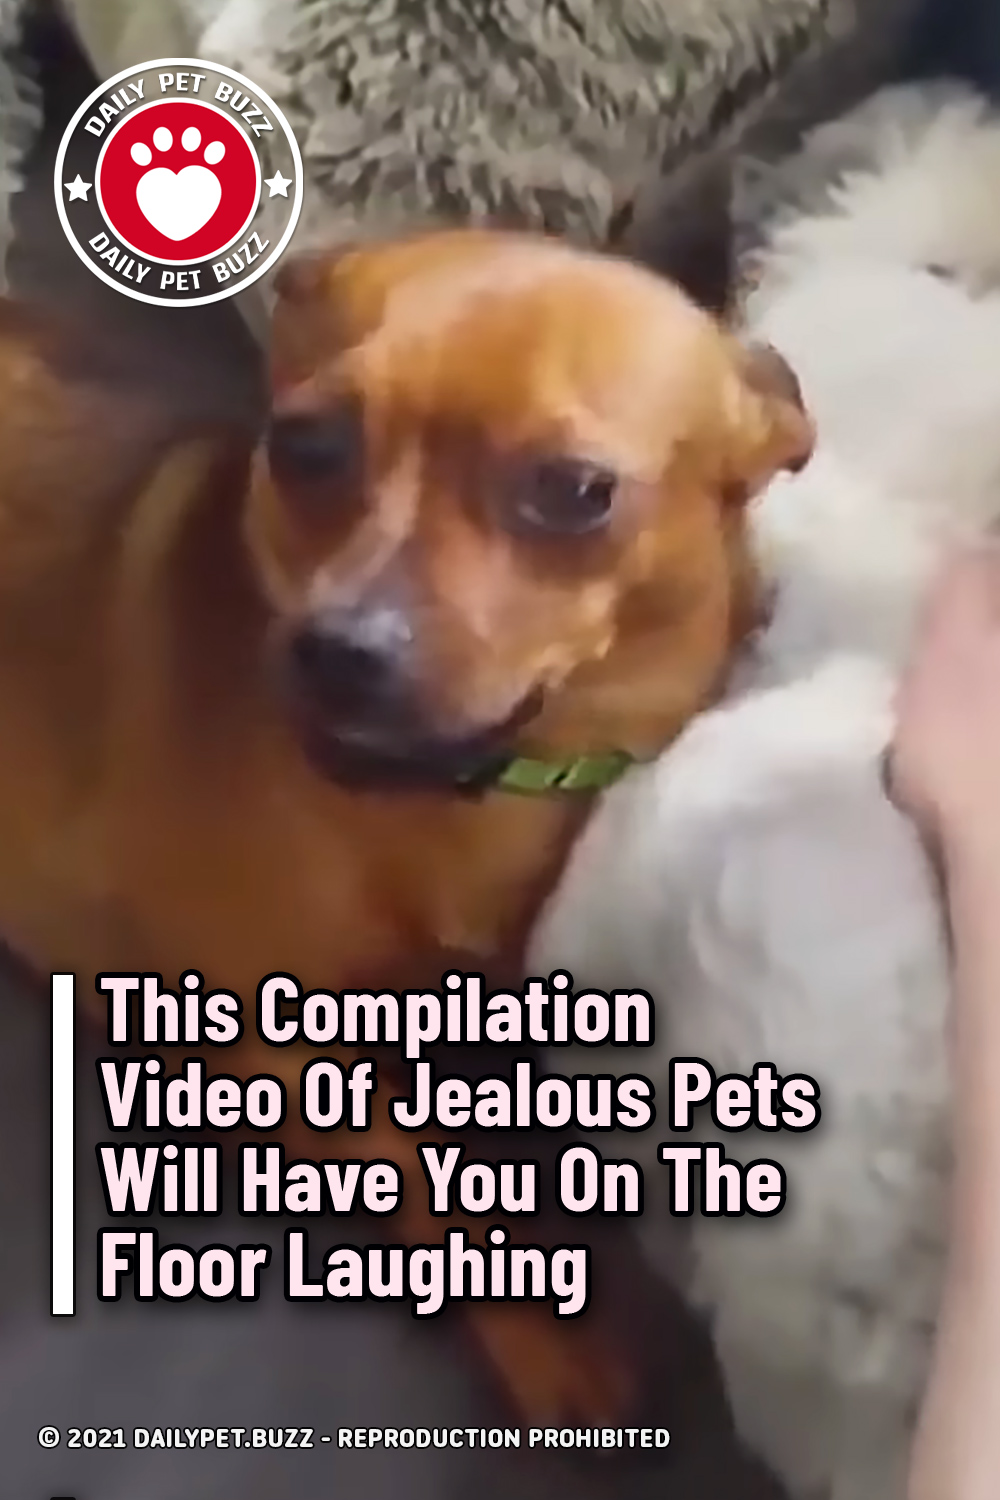 This Compilation Video Of Jealous Pets Will Have You On The Floor Laughing